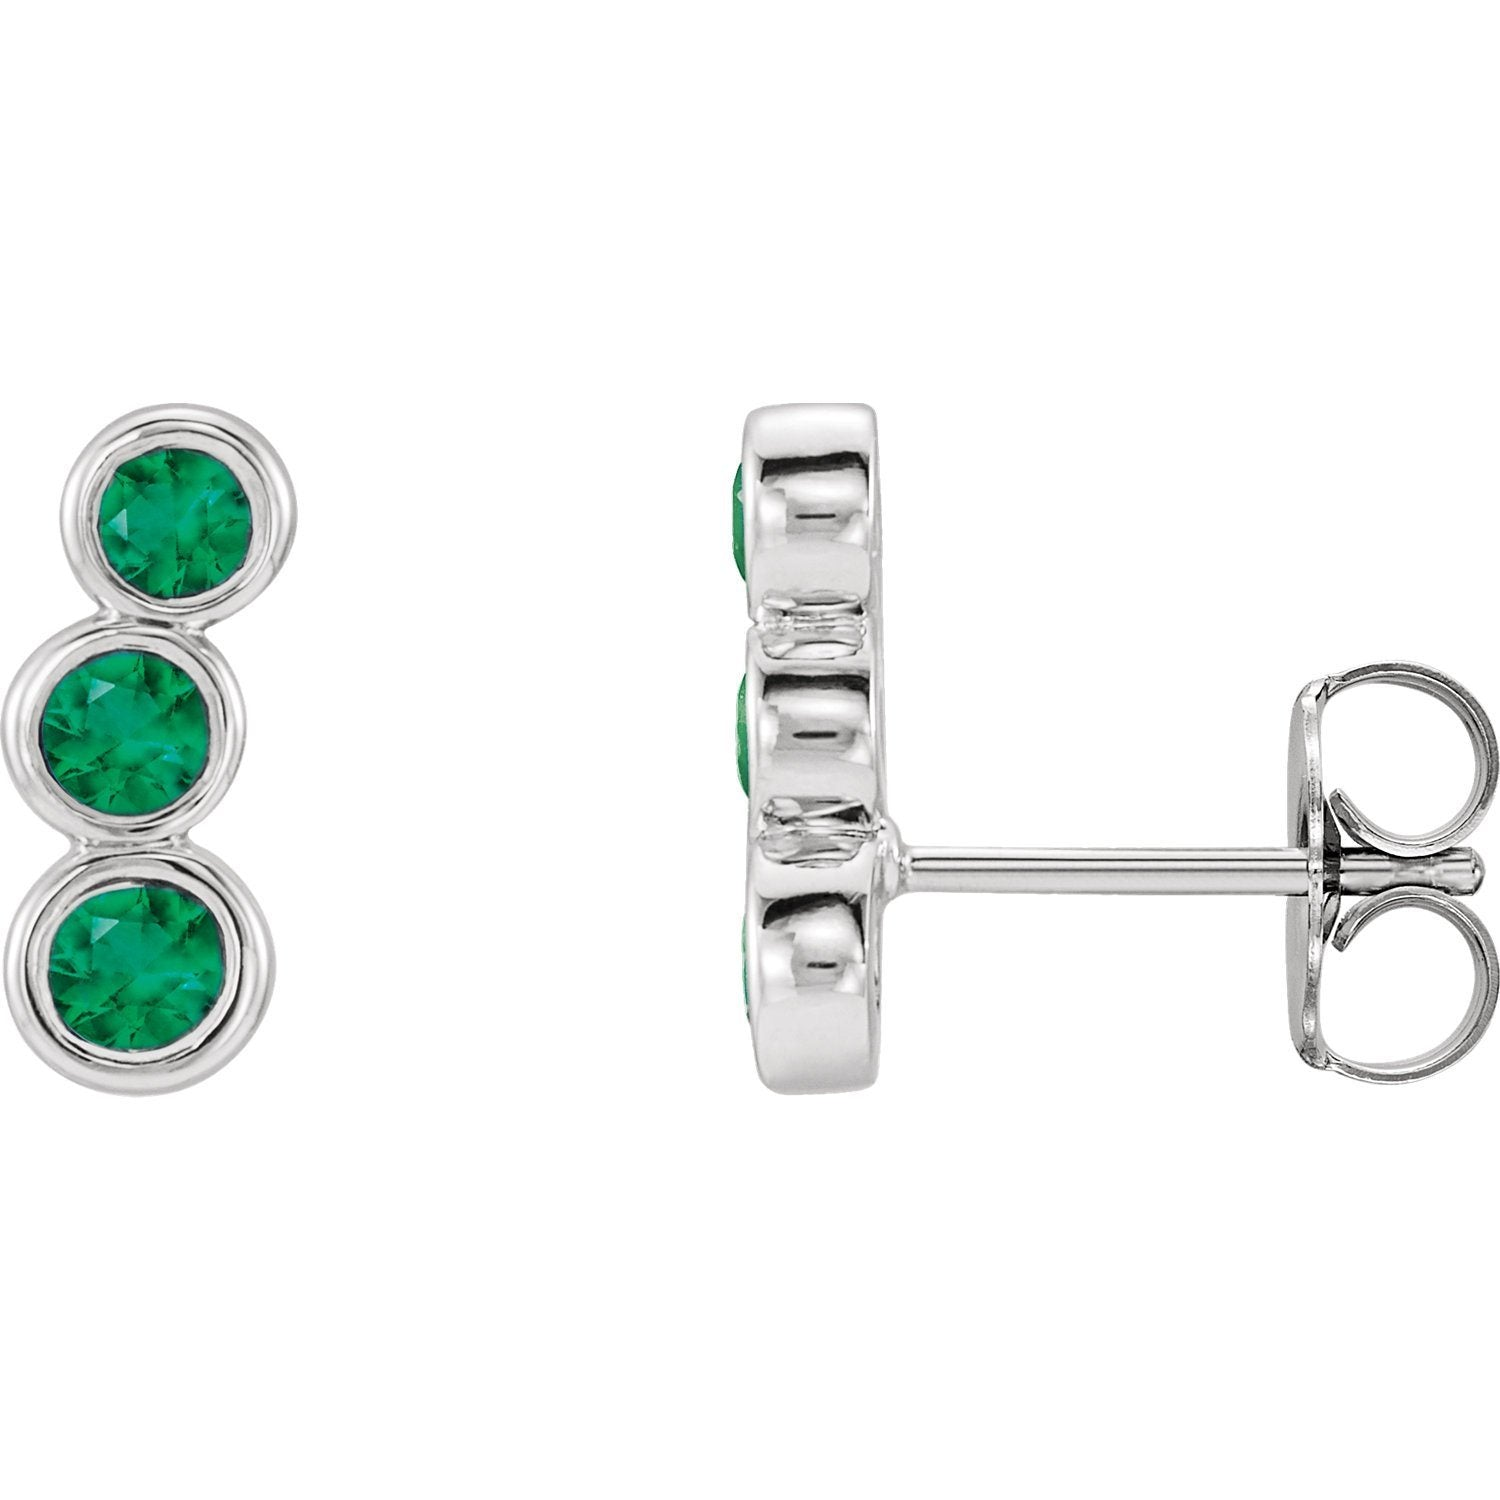 Earring - Gemstone Ear Climbers